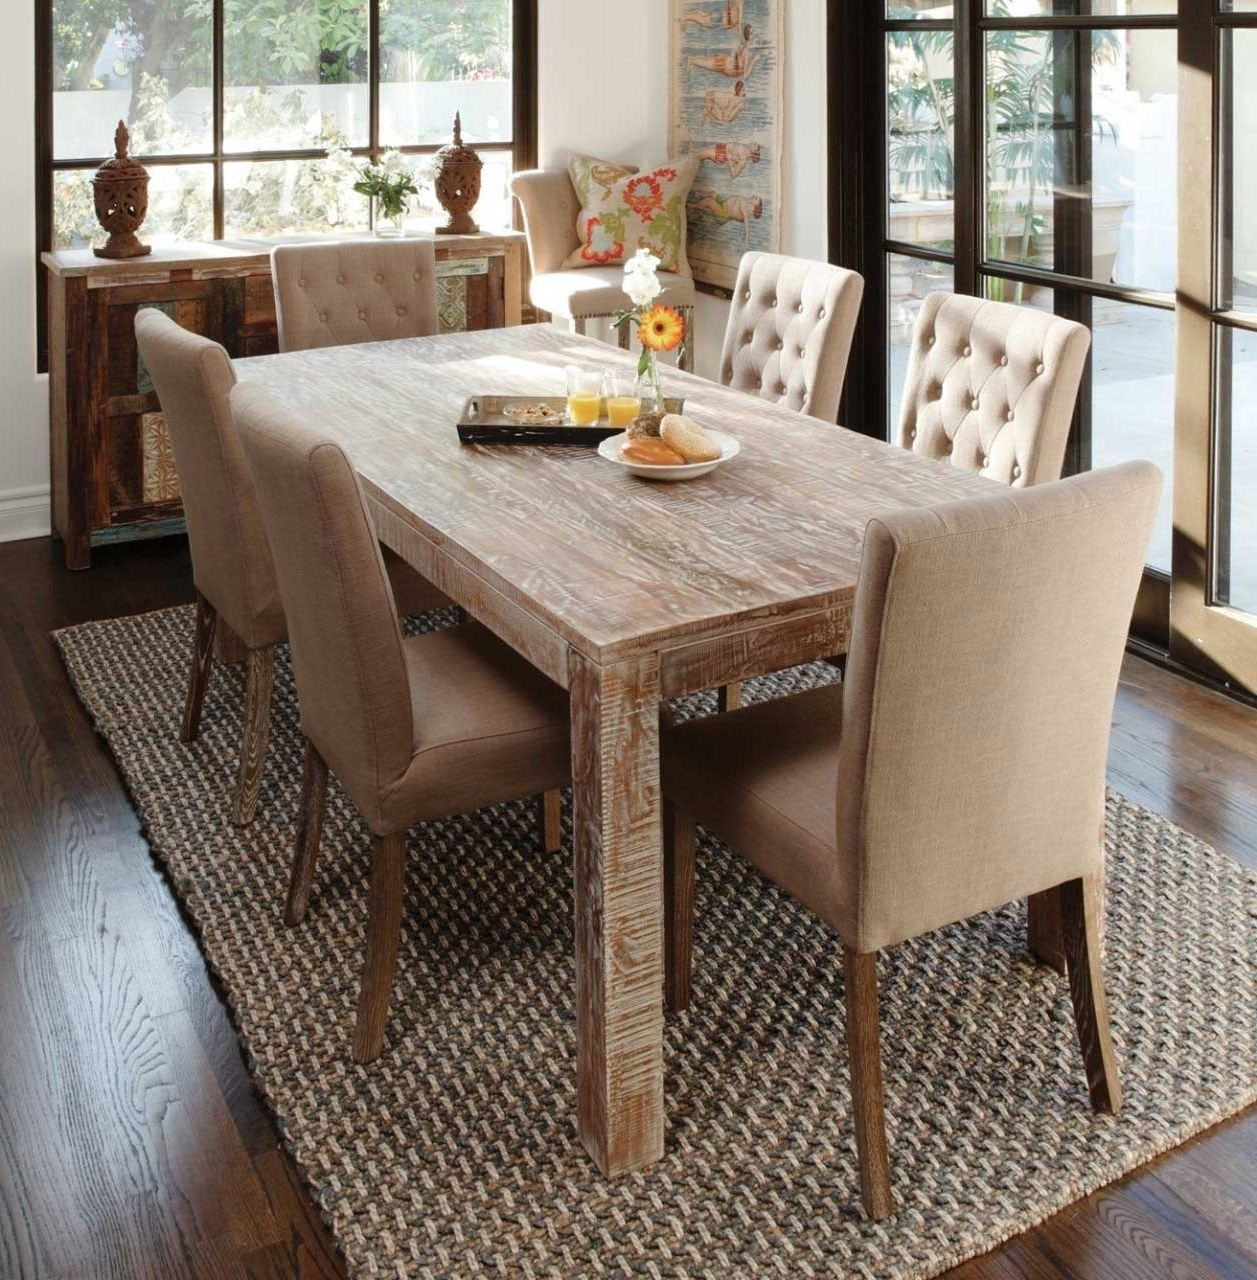 Rustic Wood Dining Table Set Http Lachpage Com Pinterest